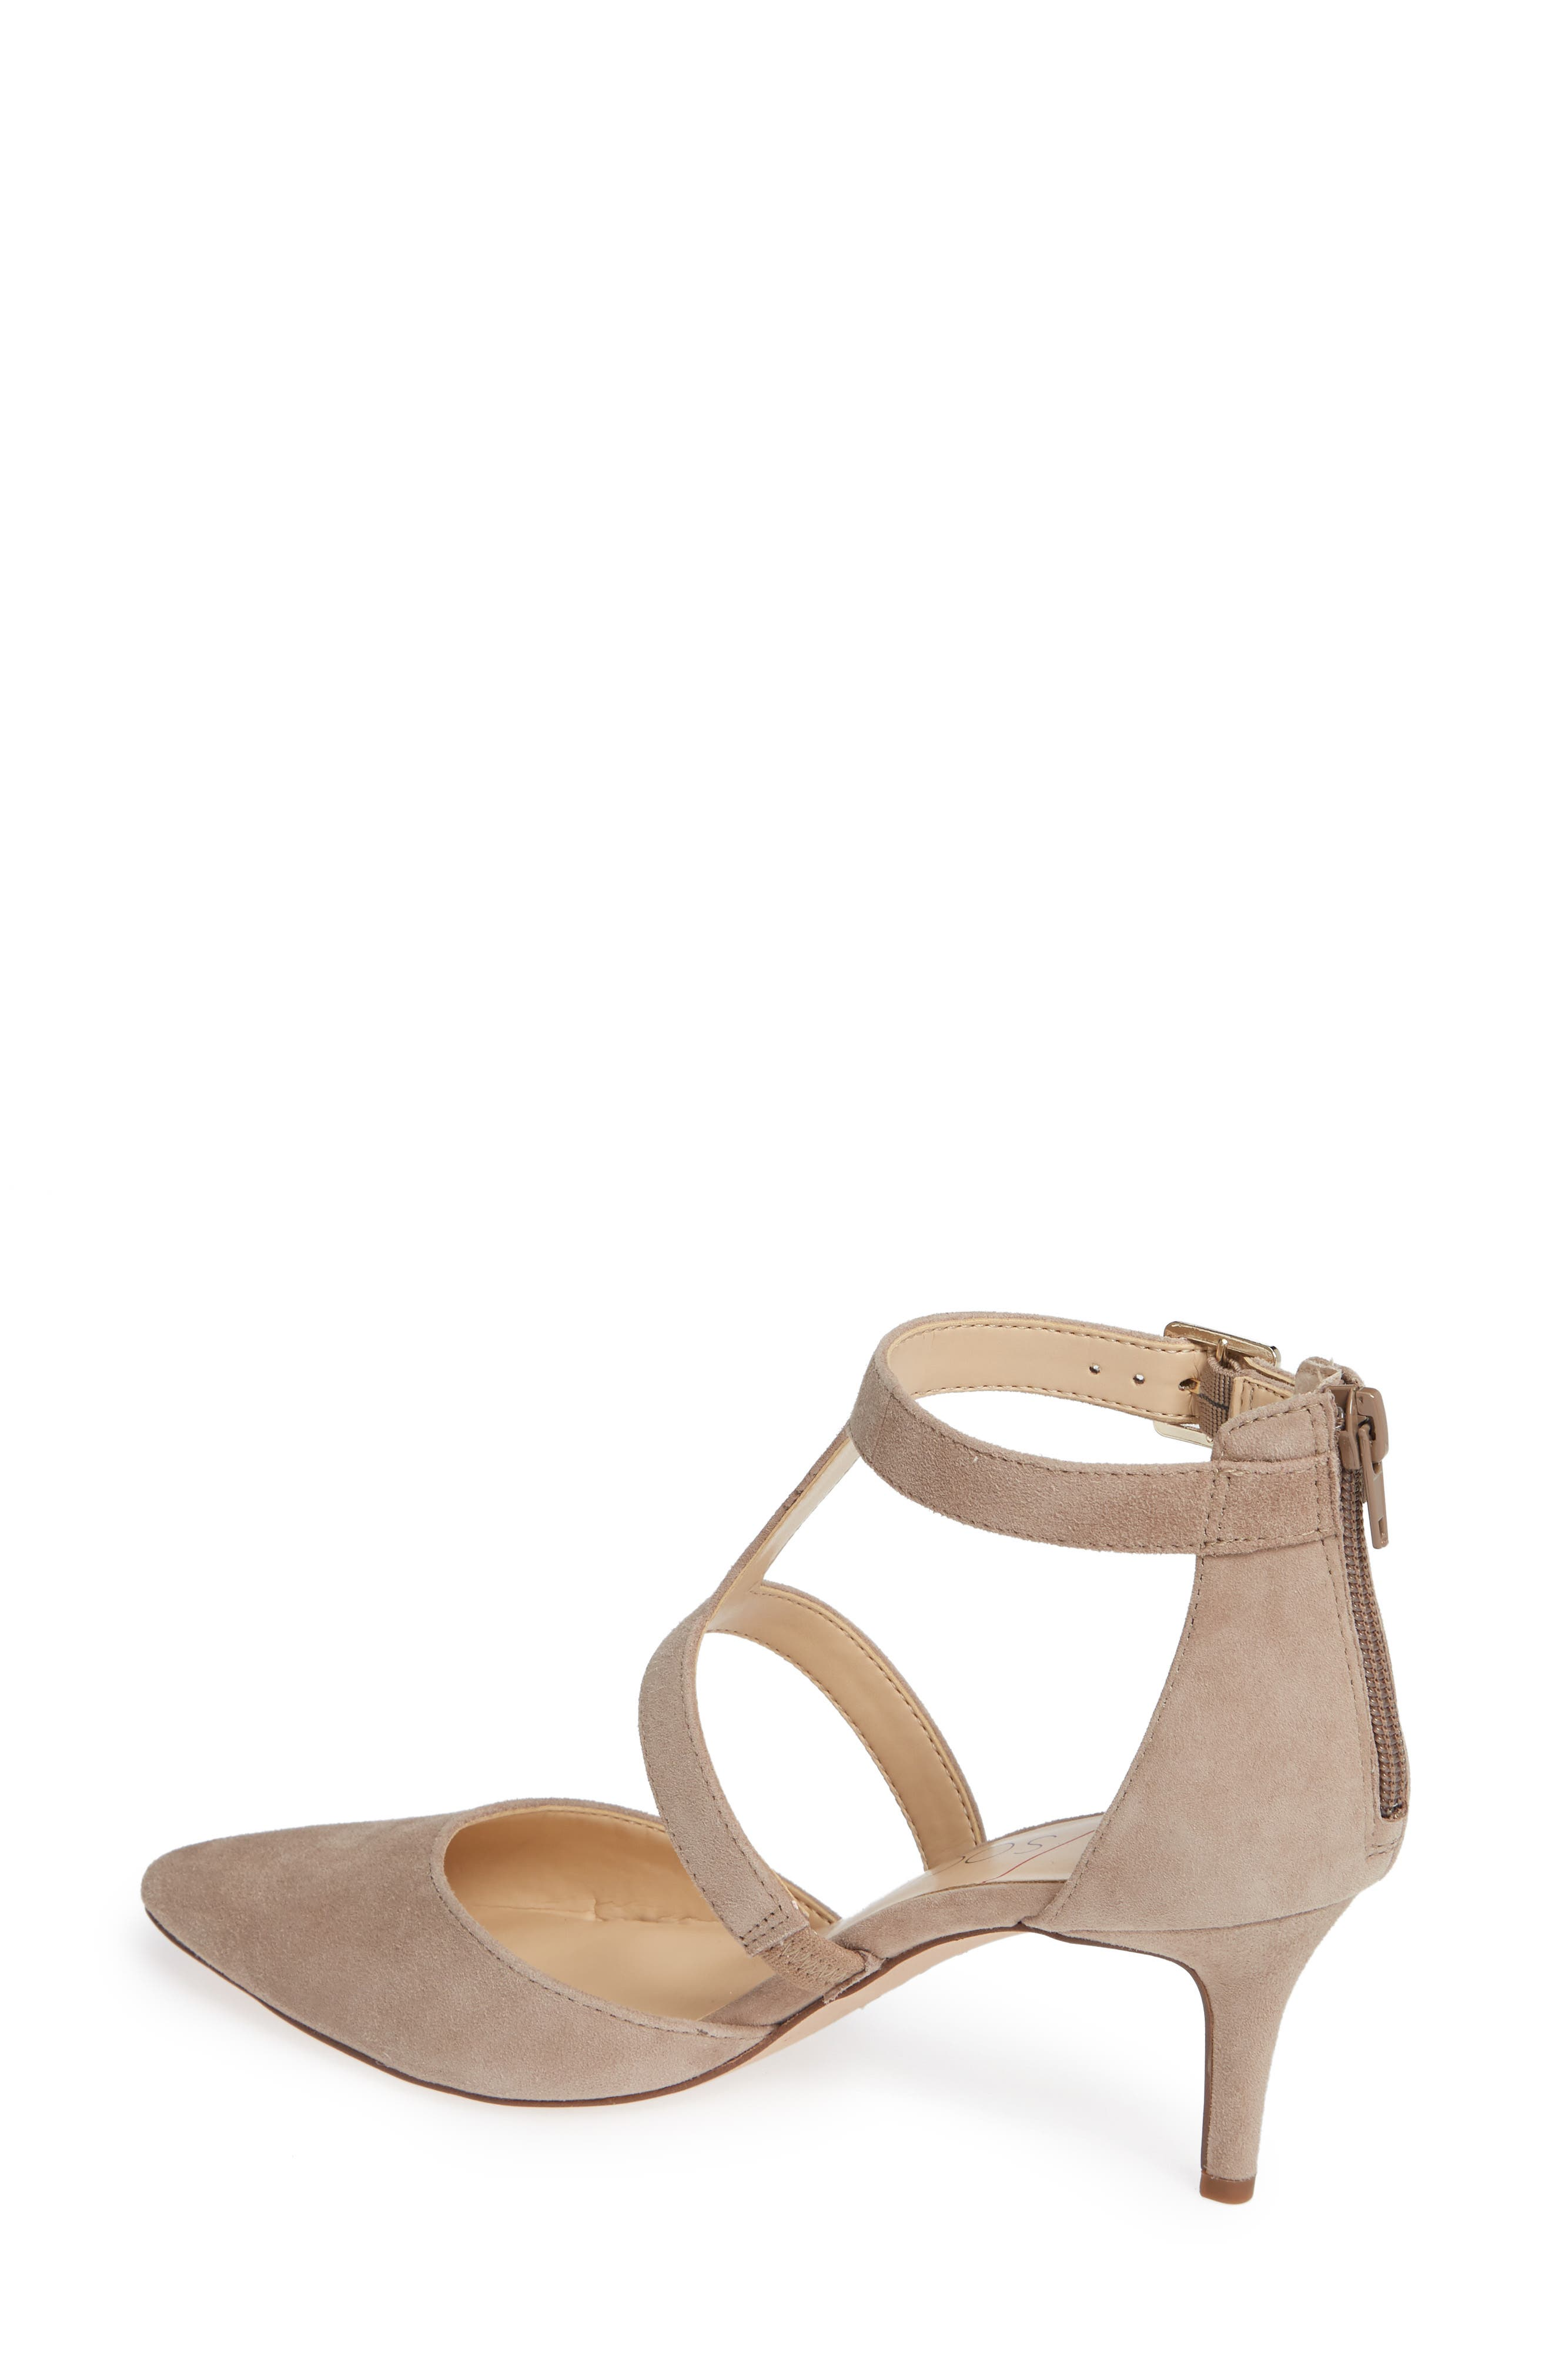 SOLE SOCIETY, Edelyn Pump, Alternate thumbnail 2, color, FALL TAUPE SUEDE